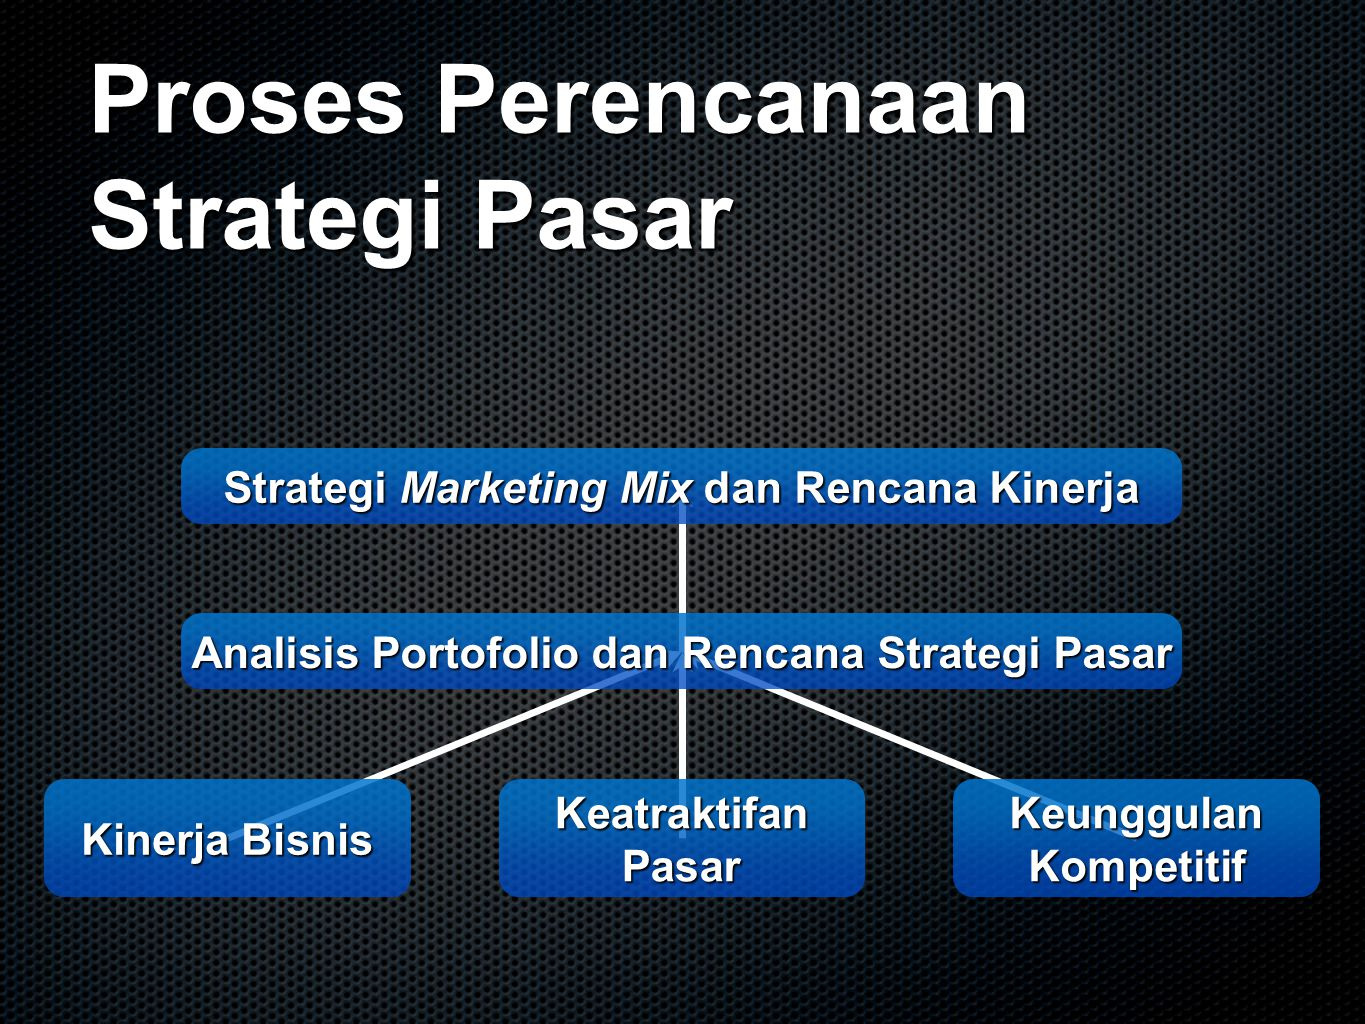 Proses Perencanaan Strategi Pasar Strategi Marketing Mix dan Rencana Kinerja Strategi Marketing Mix dan Rencana Kinerja Analisis Portofolio dan Rencan